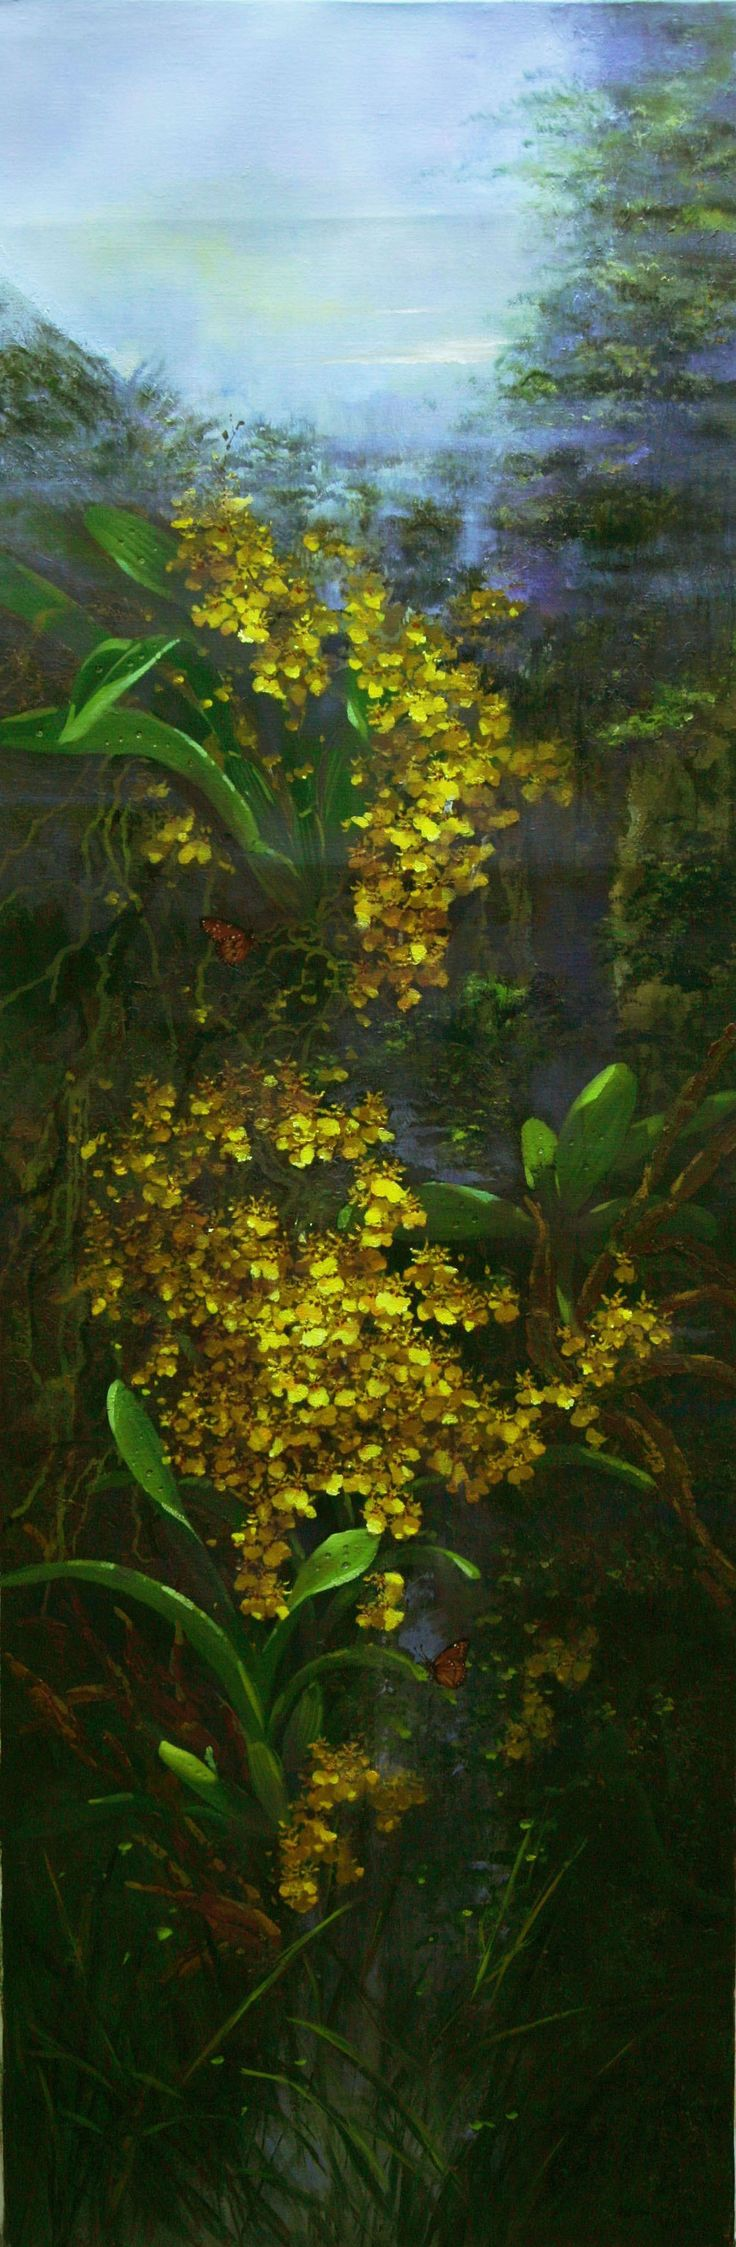 Golden Shower by Choo Ai Loon, 50 x 150cm, Oil on Canvas, 2014